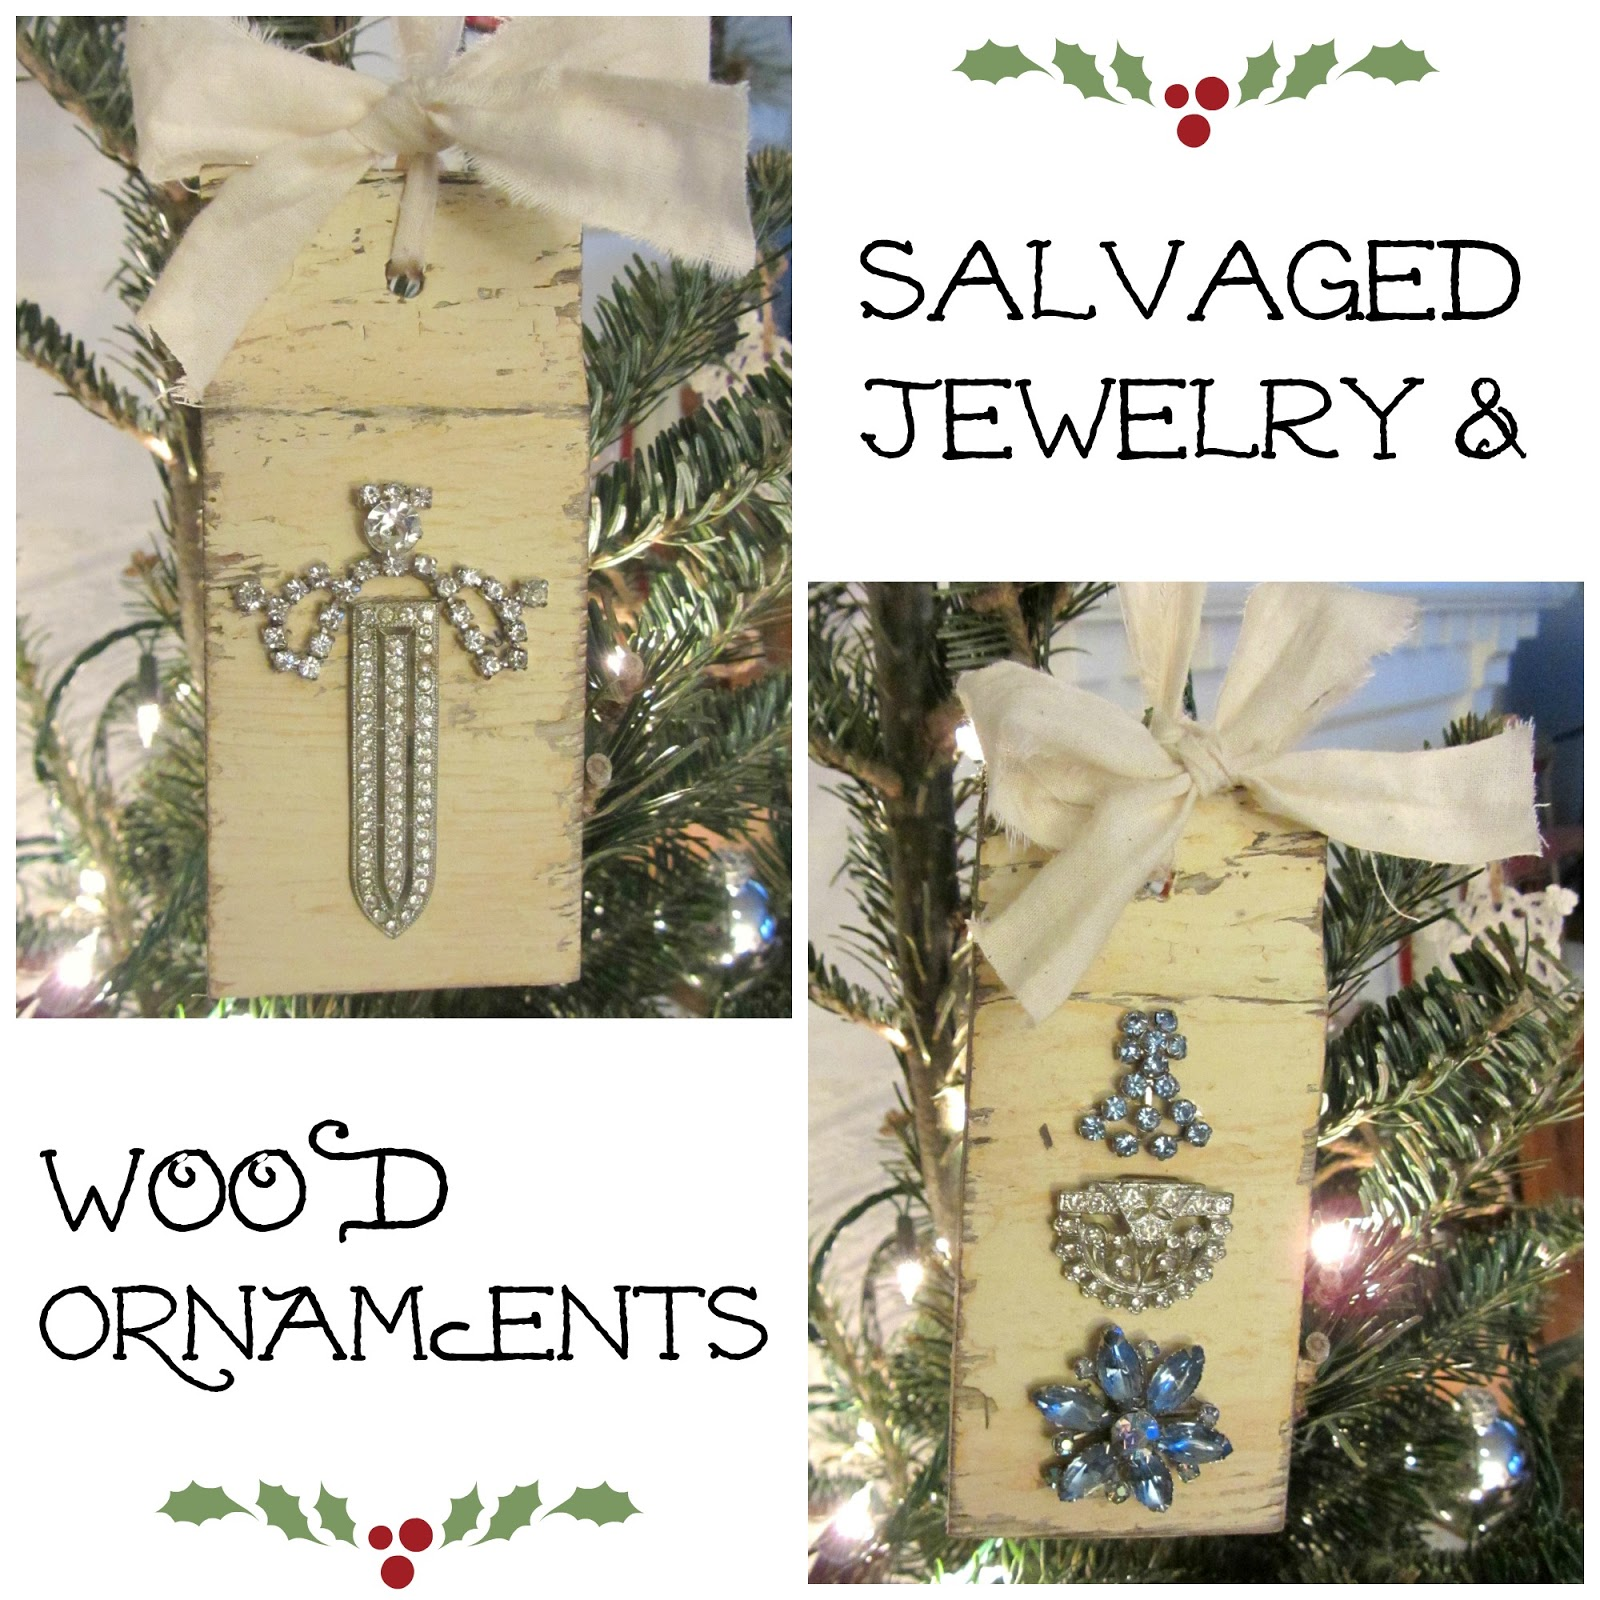 Vintage Jewelry & Salvaged Wood Ornaments www.organizedclutterqueen.blogspot.com